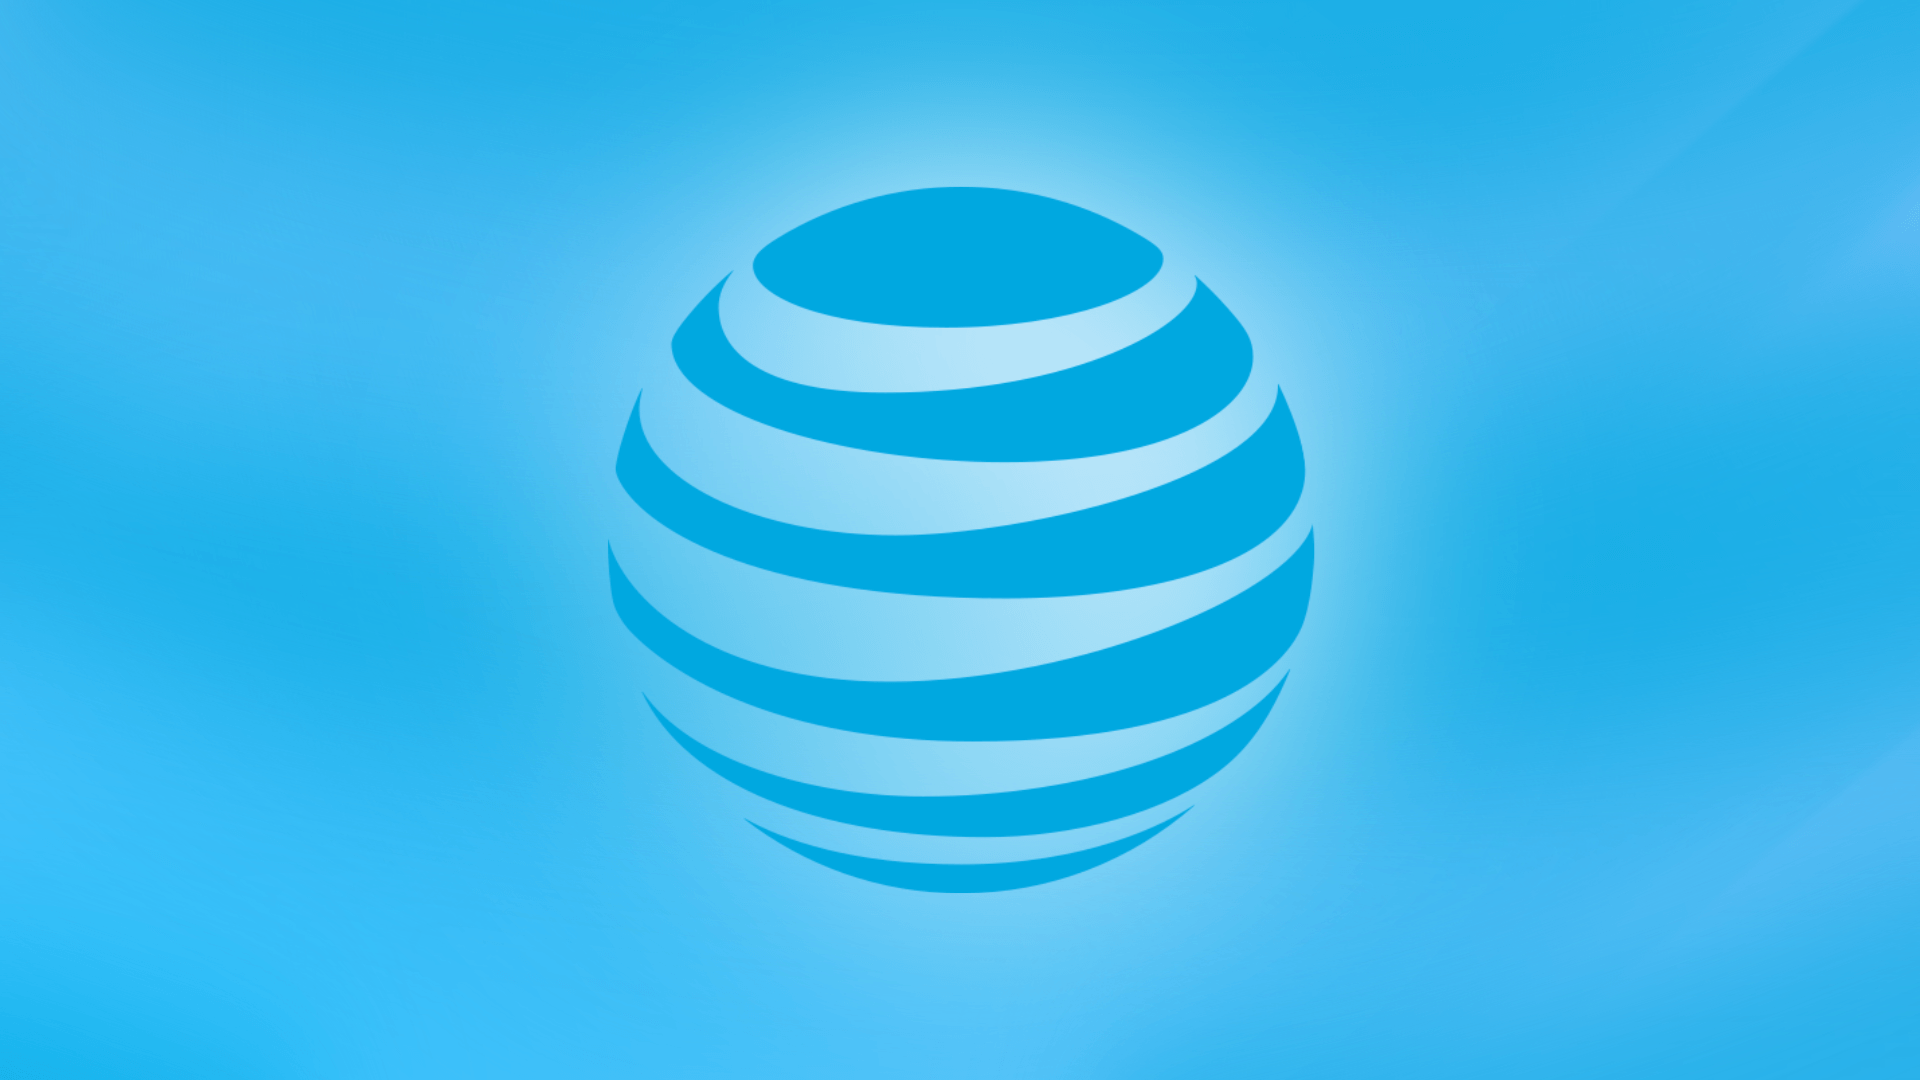 AT&T Wallpapers - Wallpaper Cave